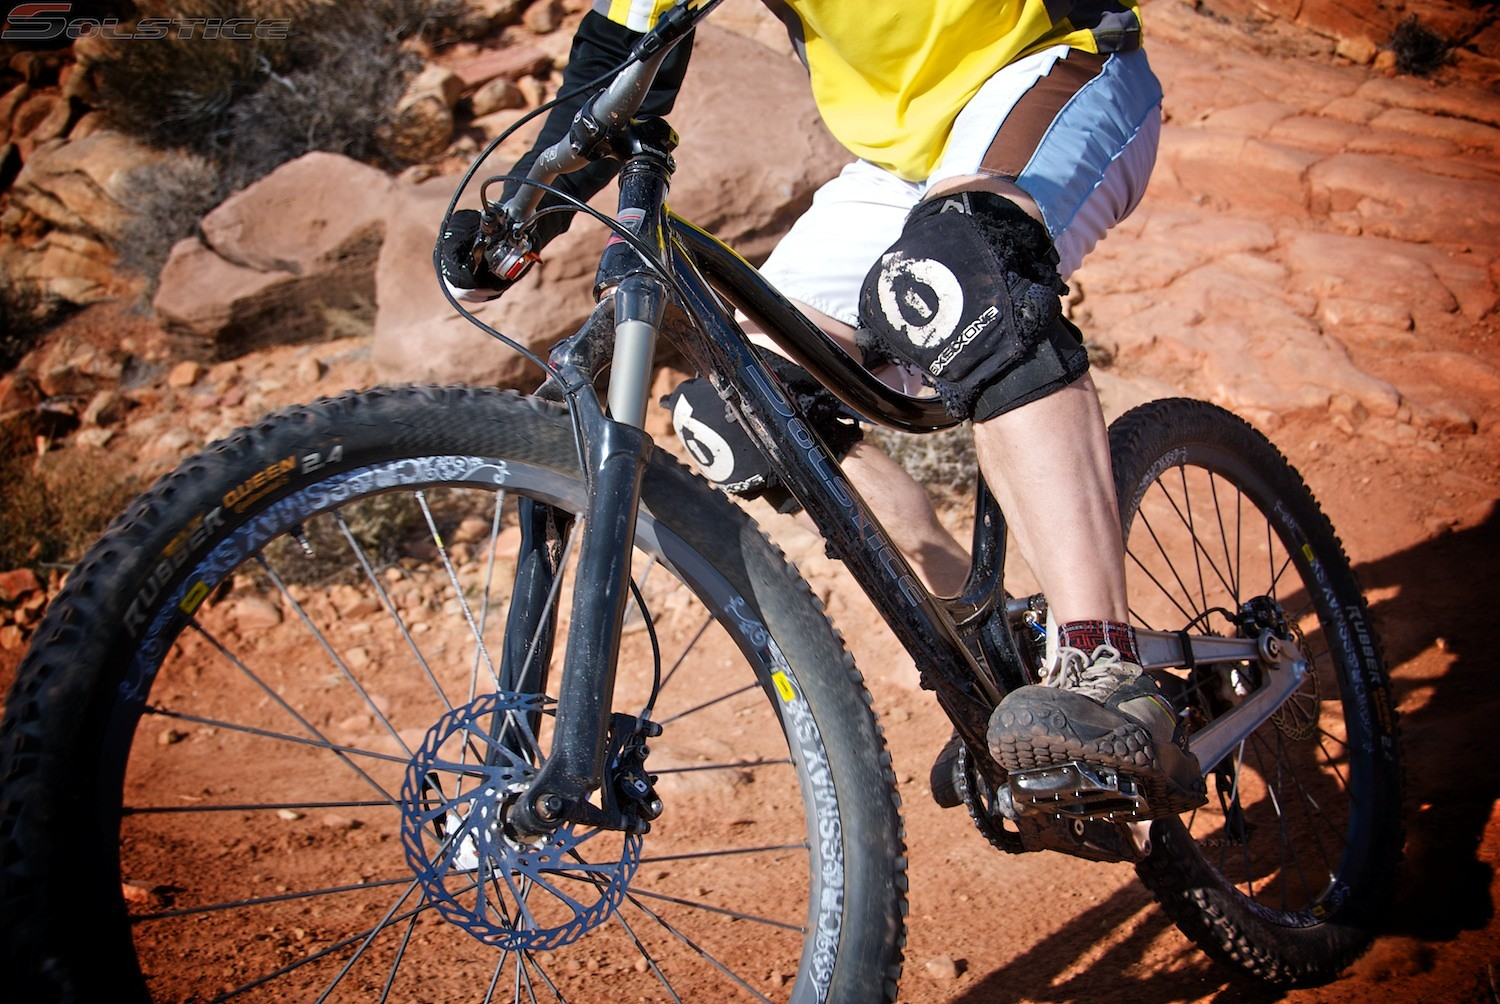 BTL 2258 - b-lec - Mountain Biking Pictures - Vital MTB